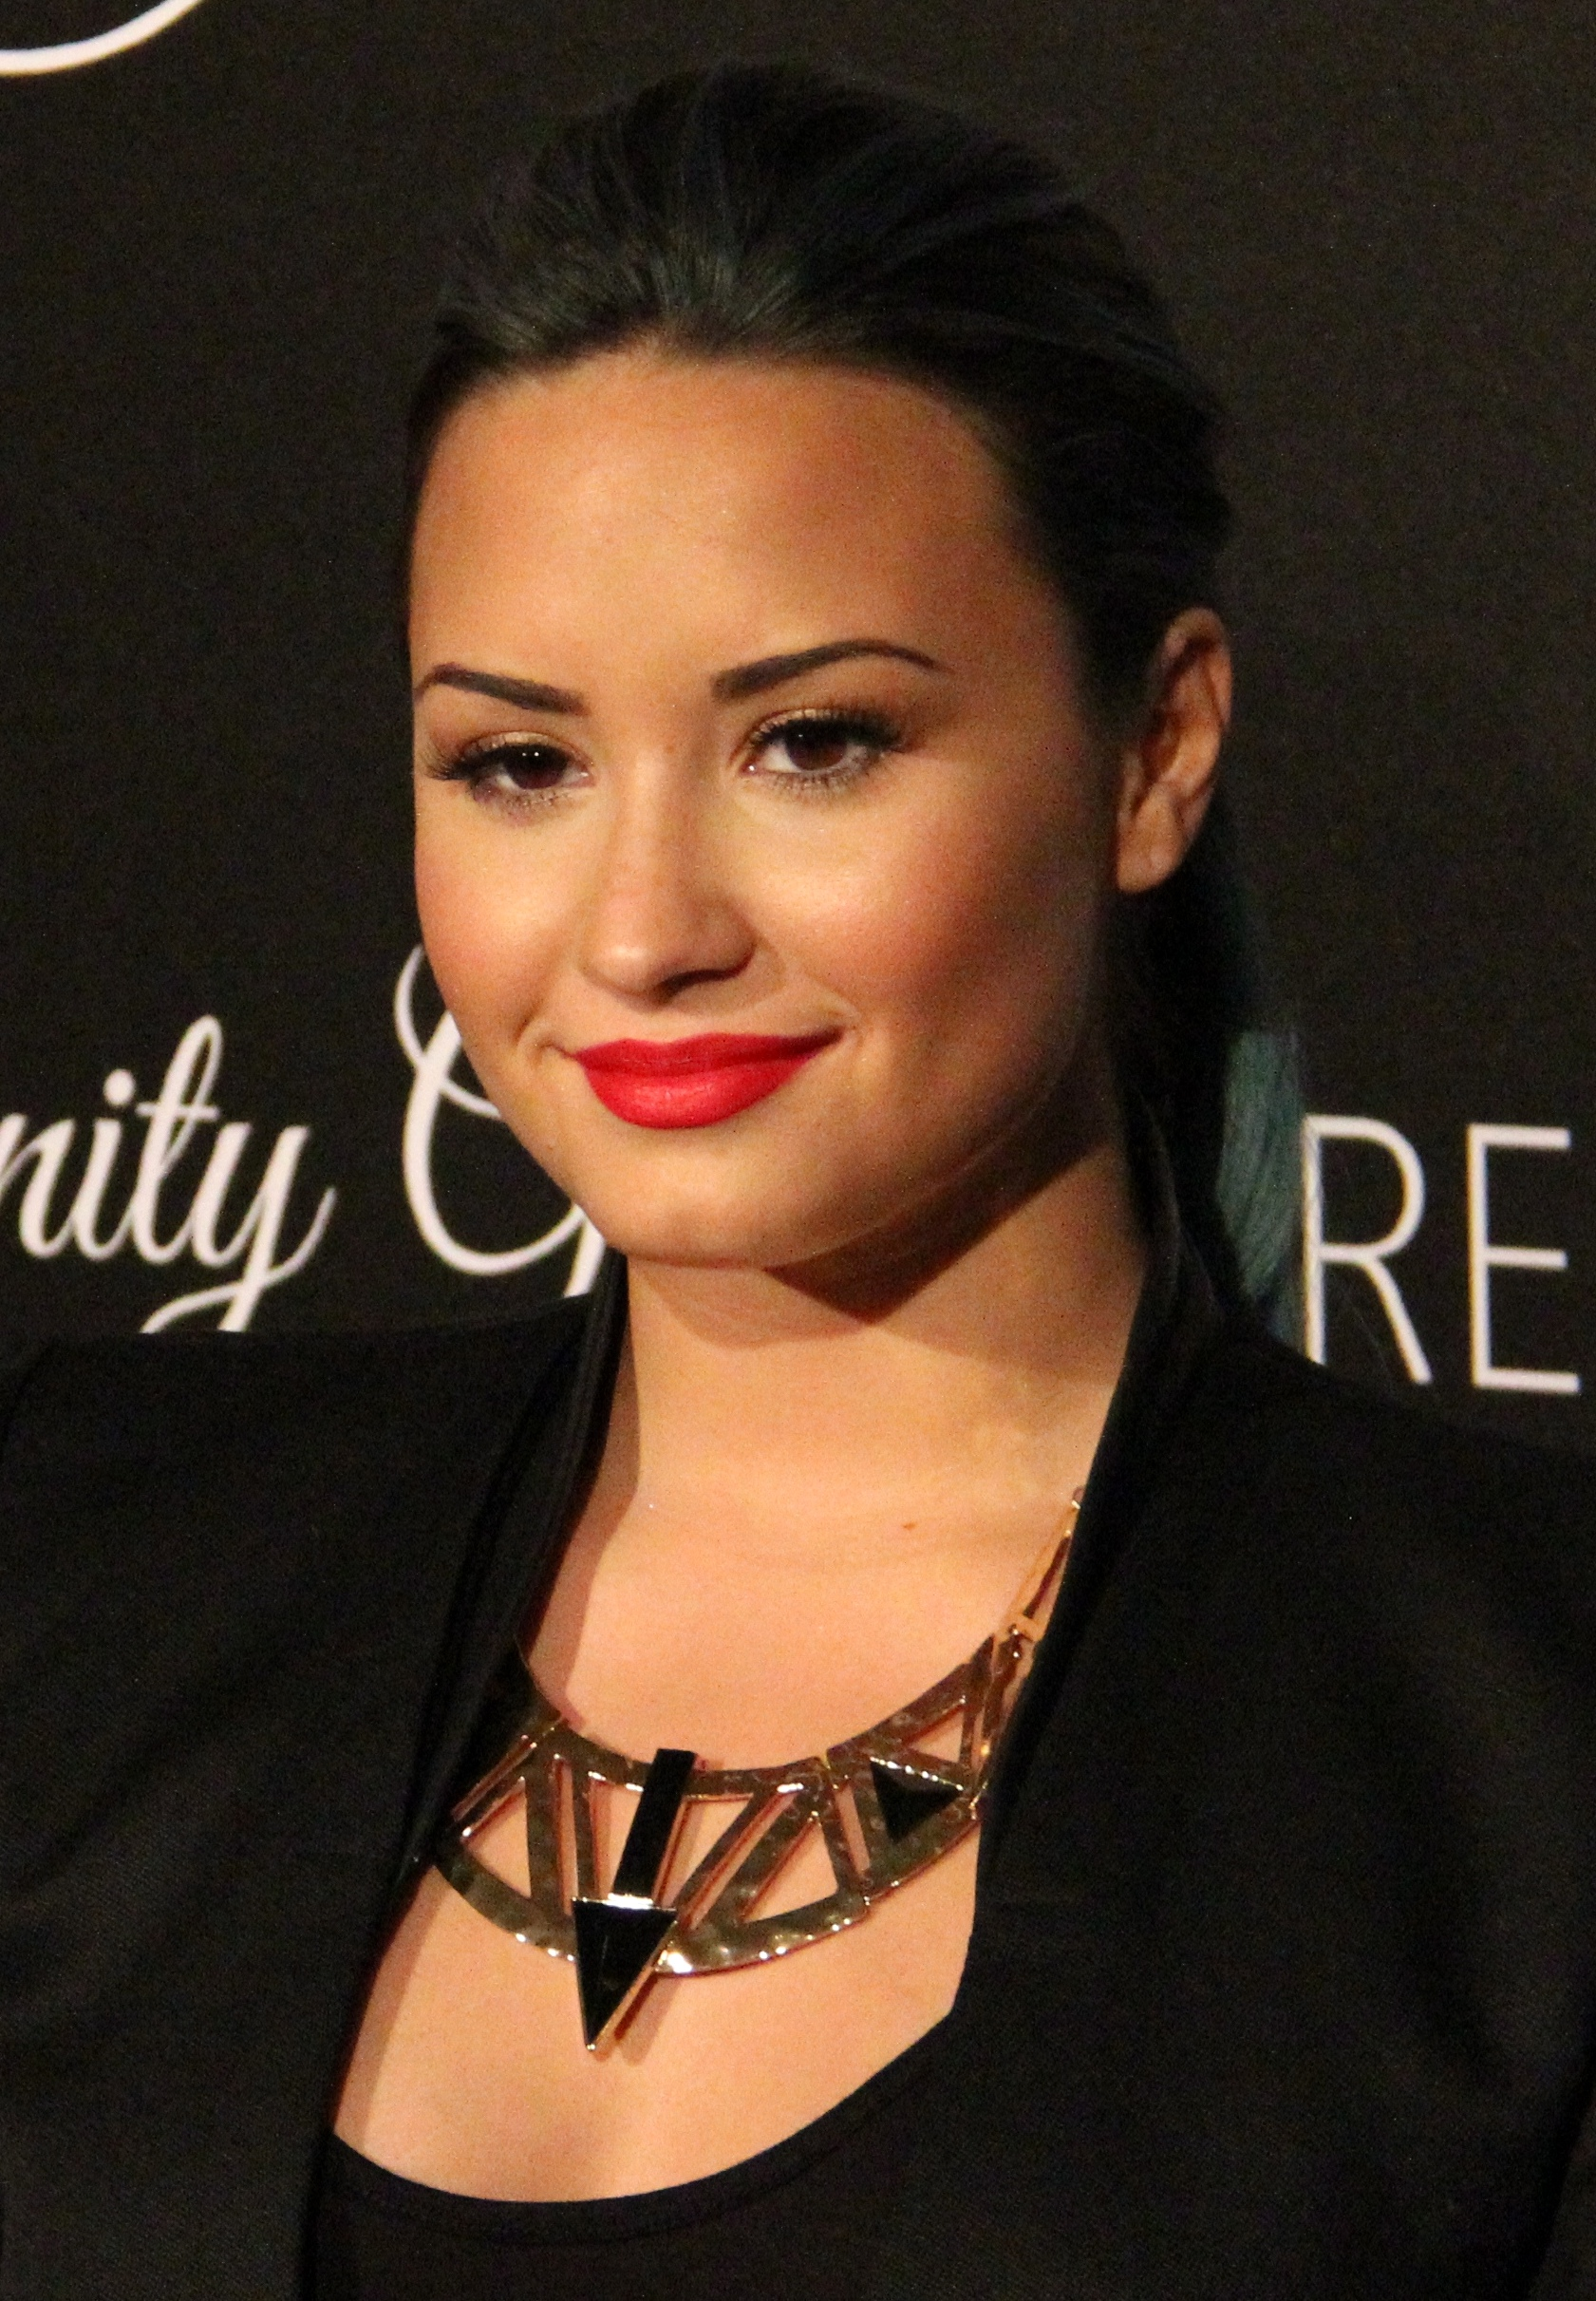 Demi-Lovato-Ethnicity-wallpaper-wp5805020